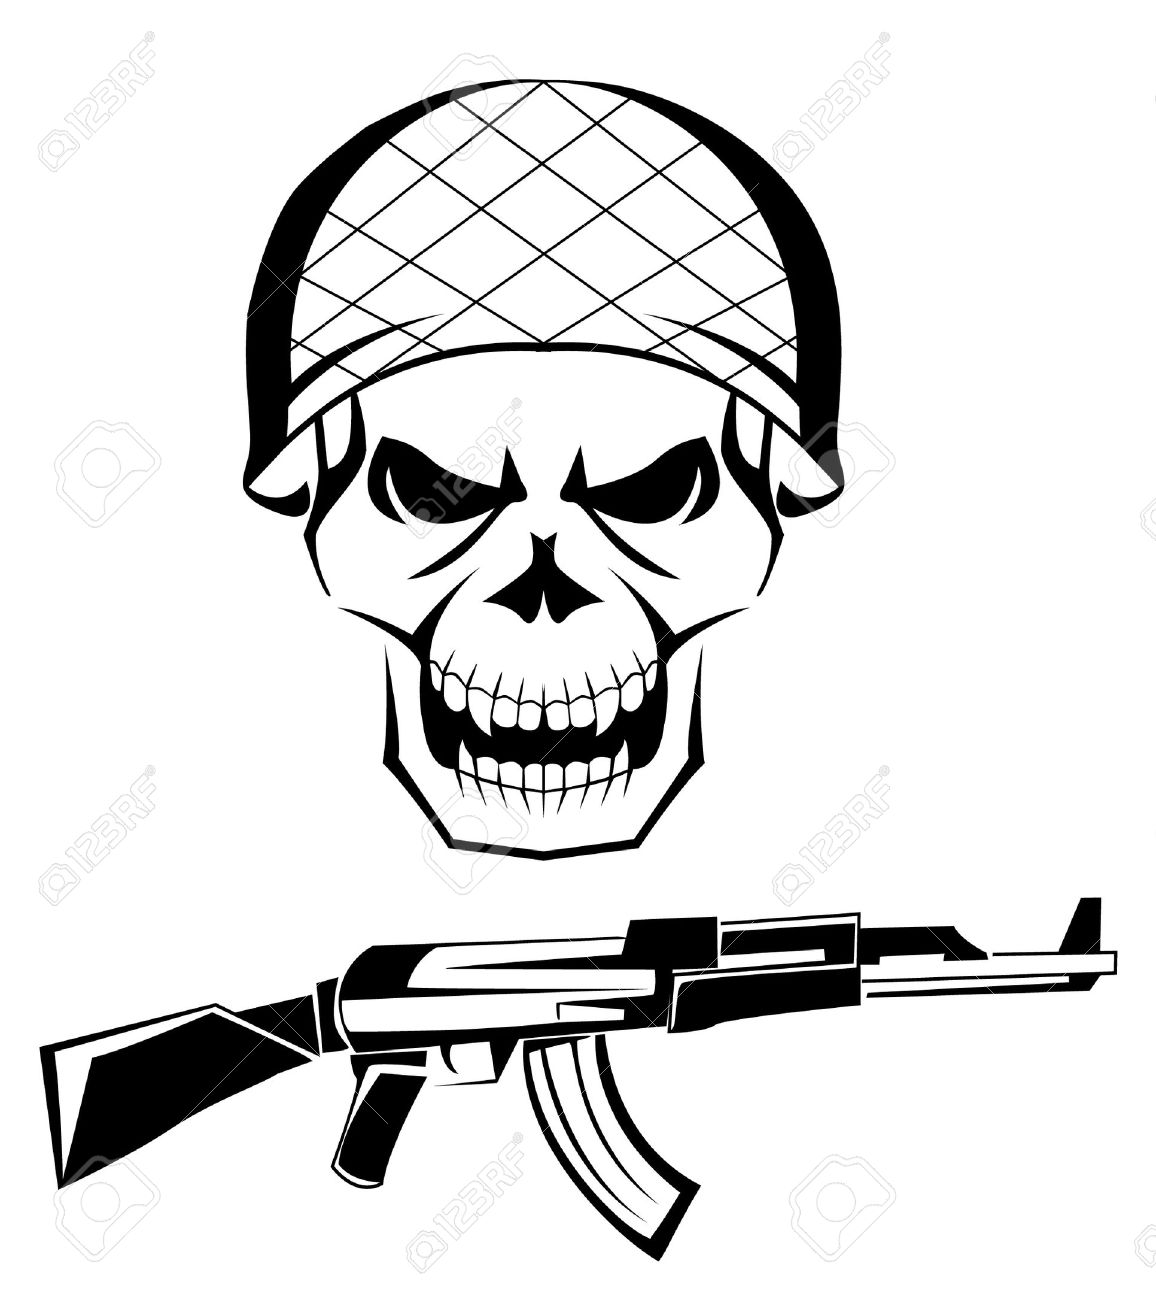 Drawings Easy Skull With Guns: 20+ Army Skull Tattoo Designs